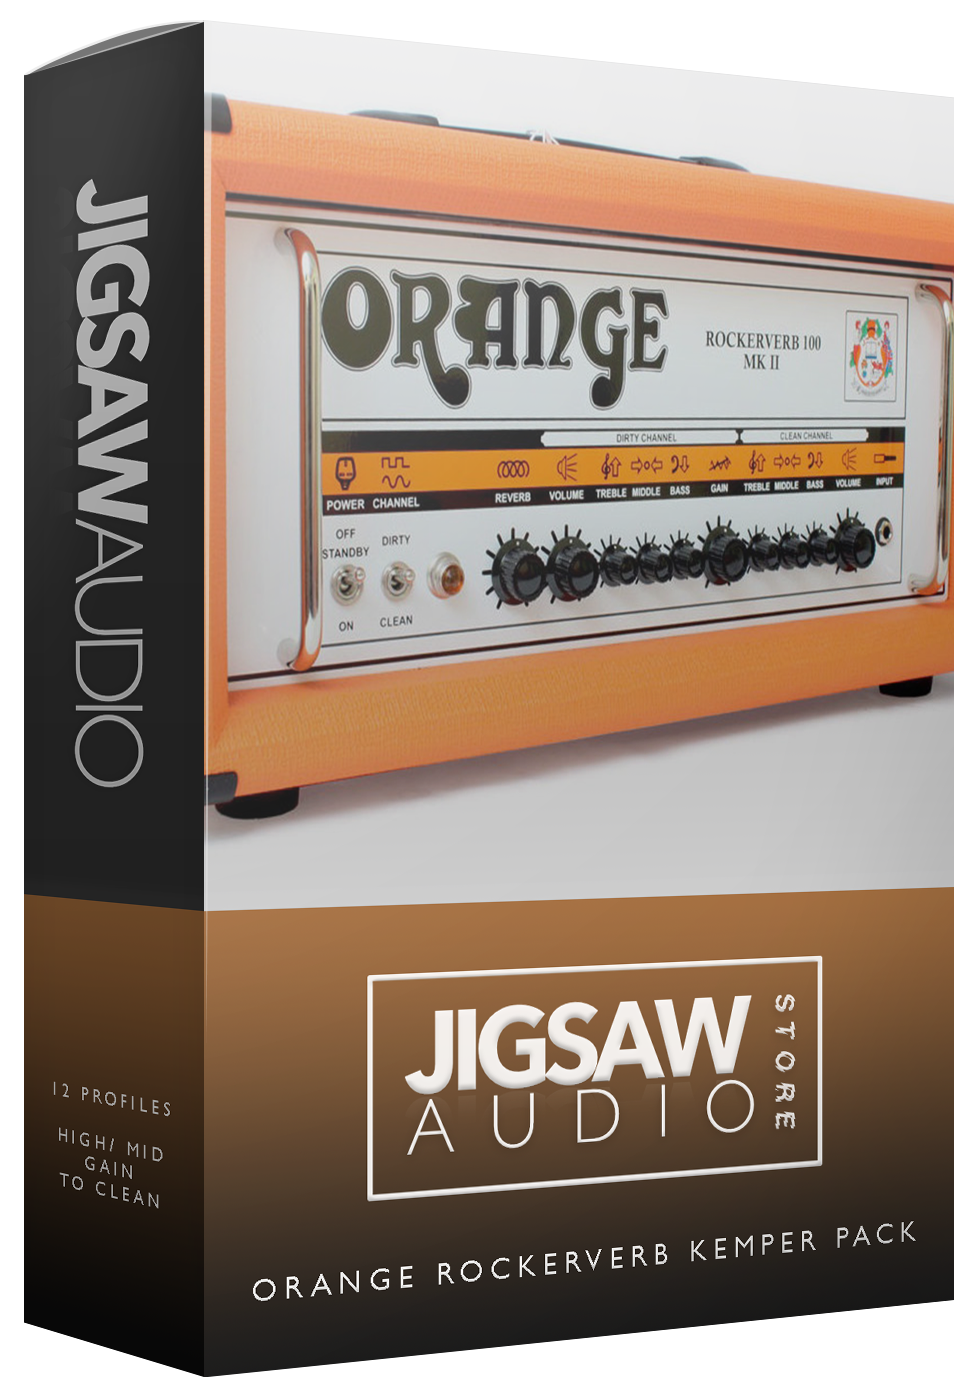 Image of Orange Rockerverb Kemper Pack